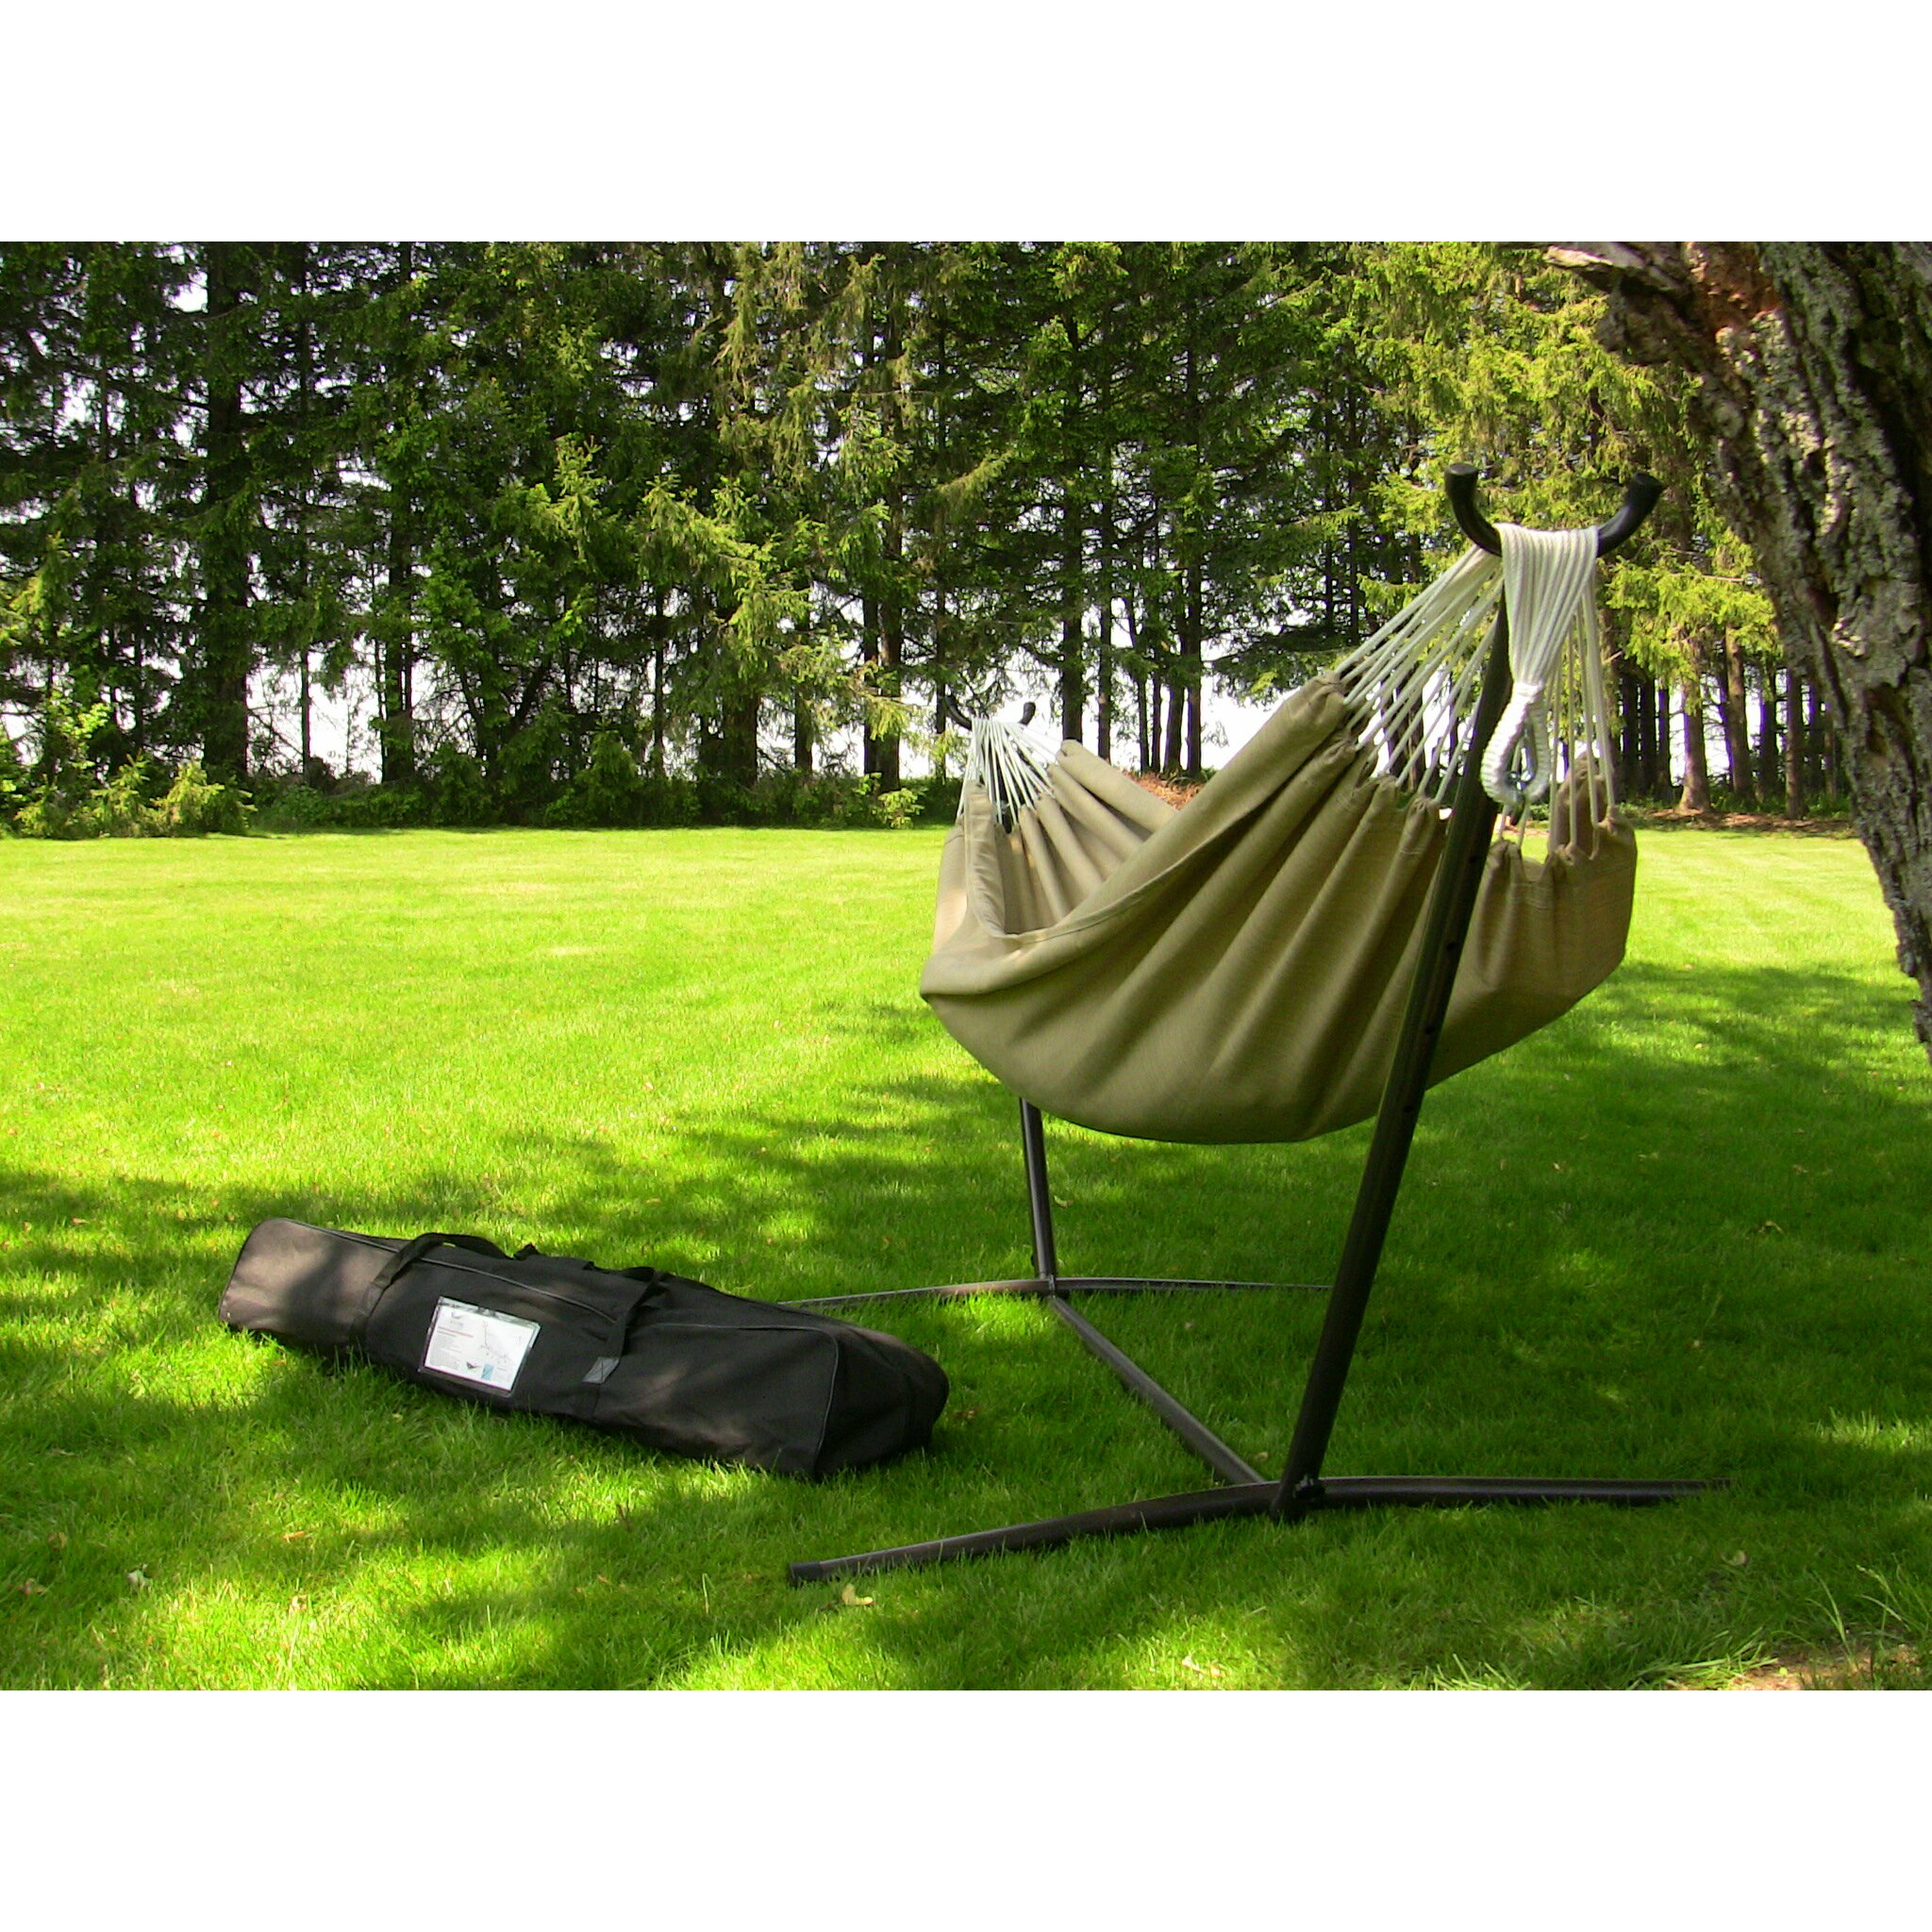 Backyard Hammock Reviews : Outdoor Patio Furniture  Hammocks with Stands Vivere Hammocks SKU